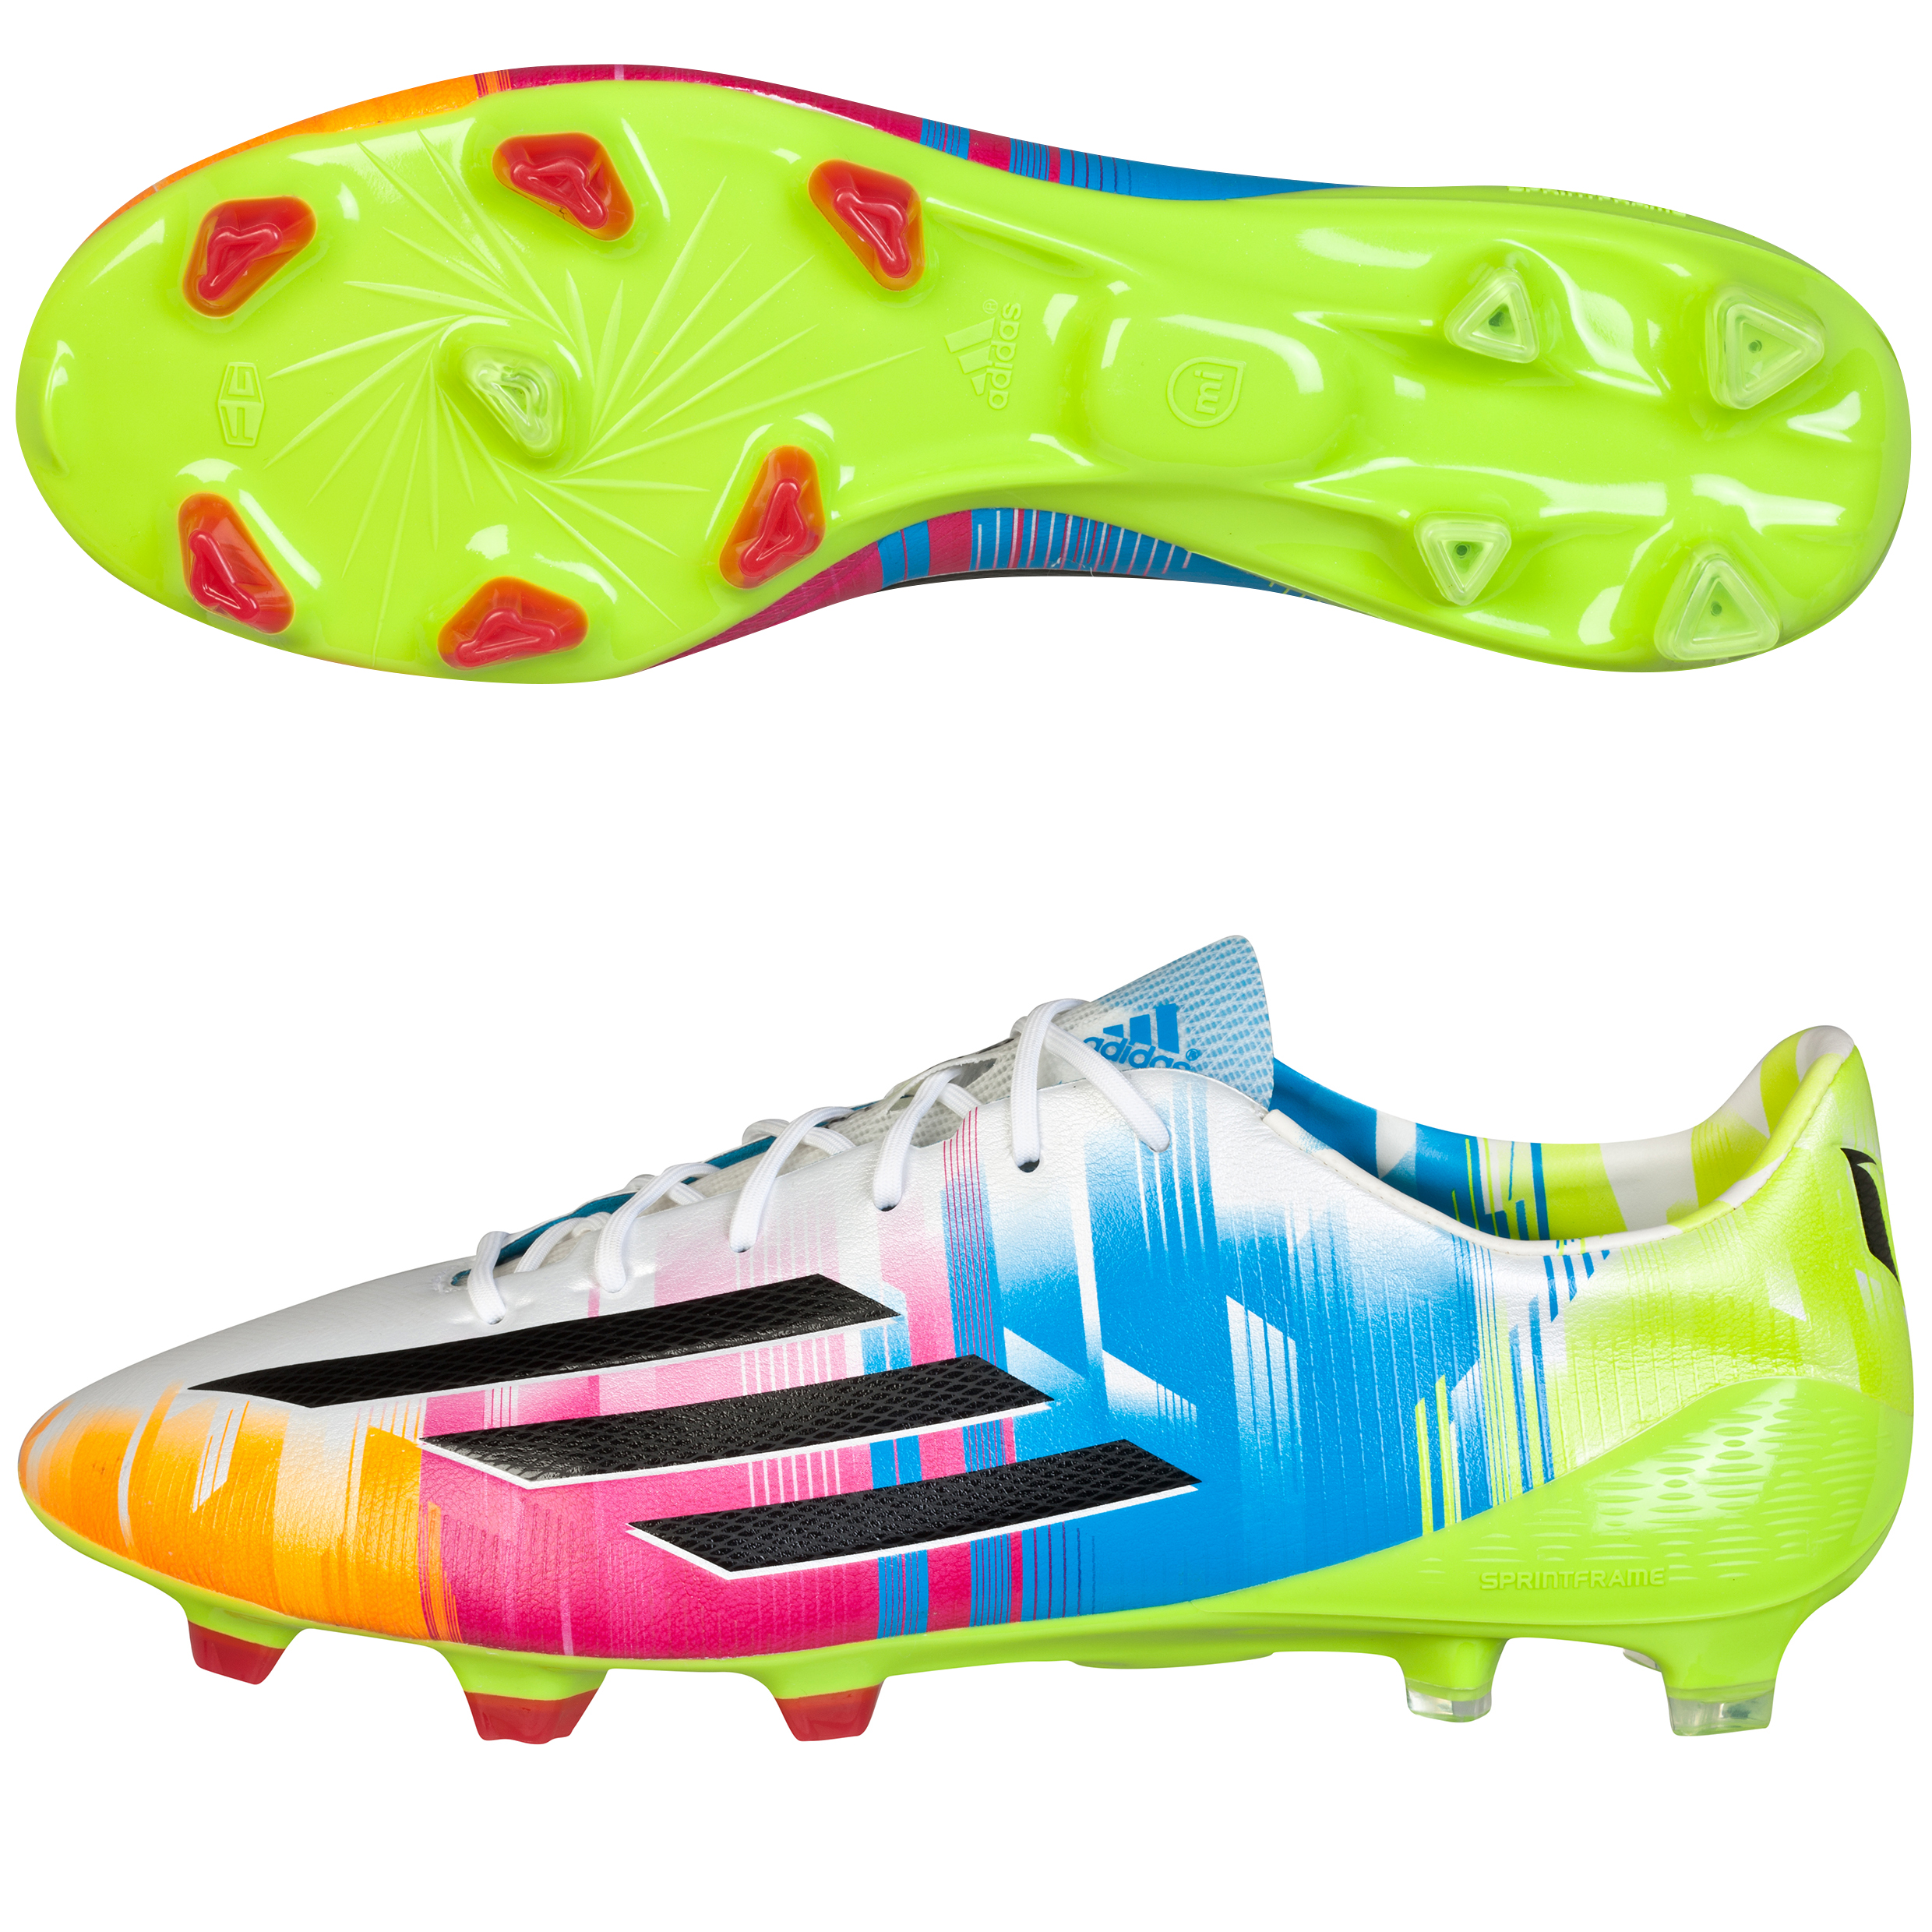 Adidas F50 adiZero Messi TRX Firm Ground Football Boots White